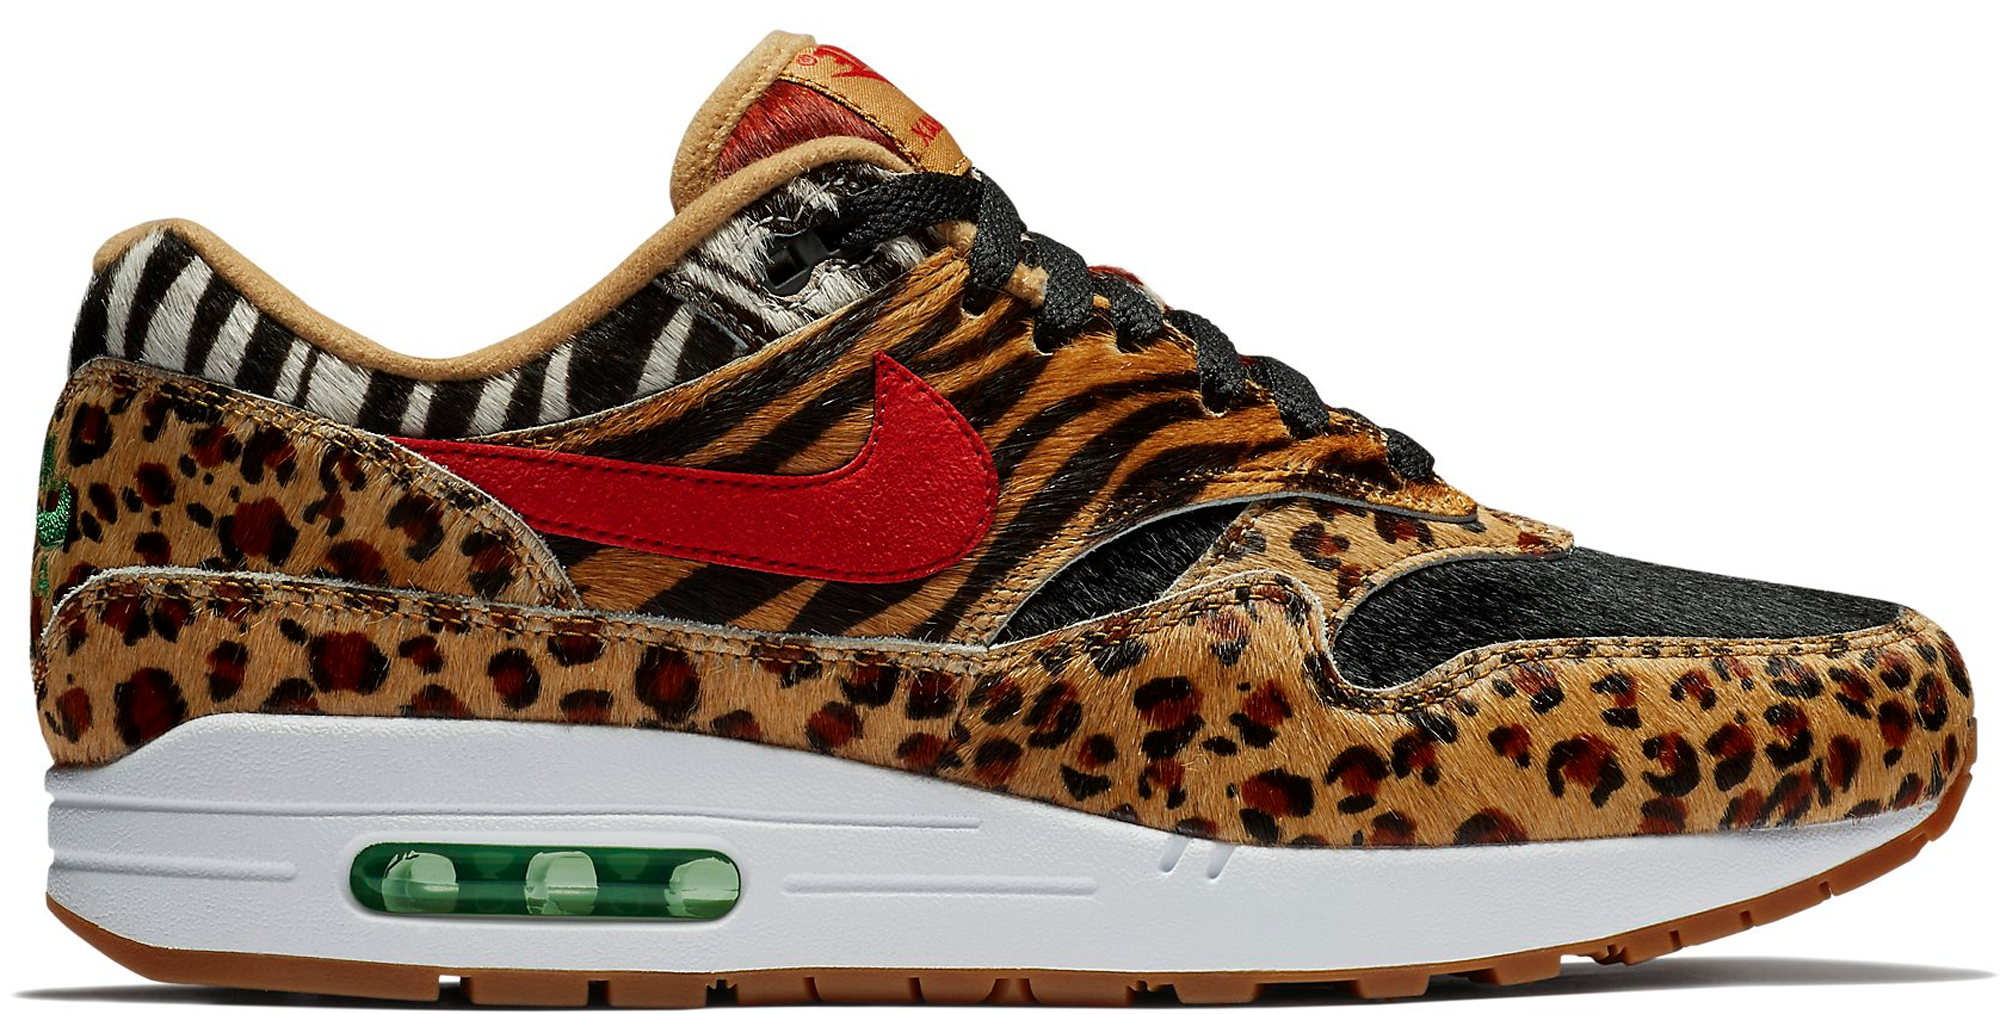 5242d536a4387 Animal Pack Nike Id Animal Print Nike Air Max - Musée des ...